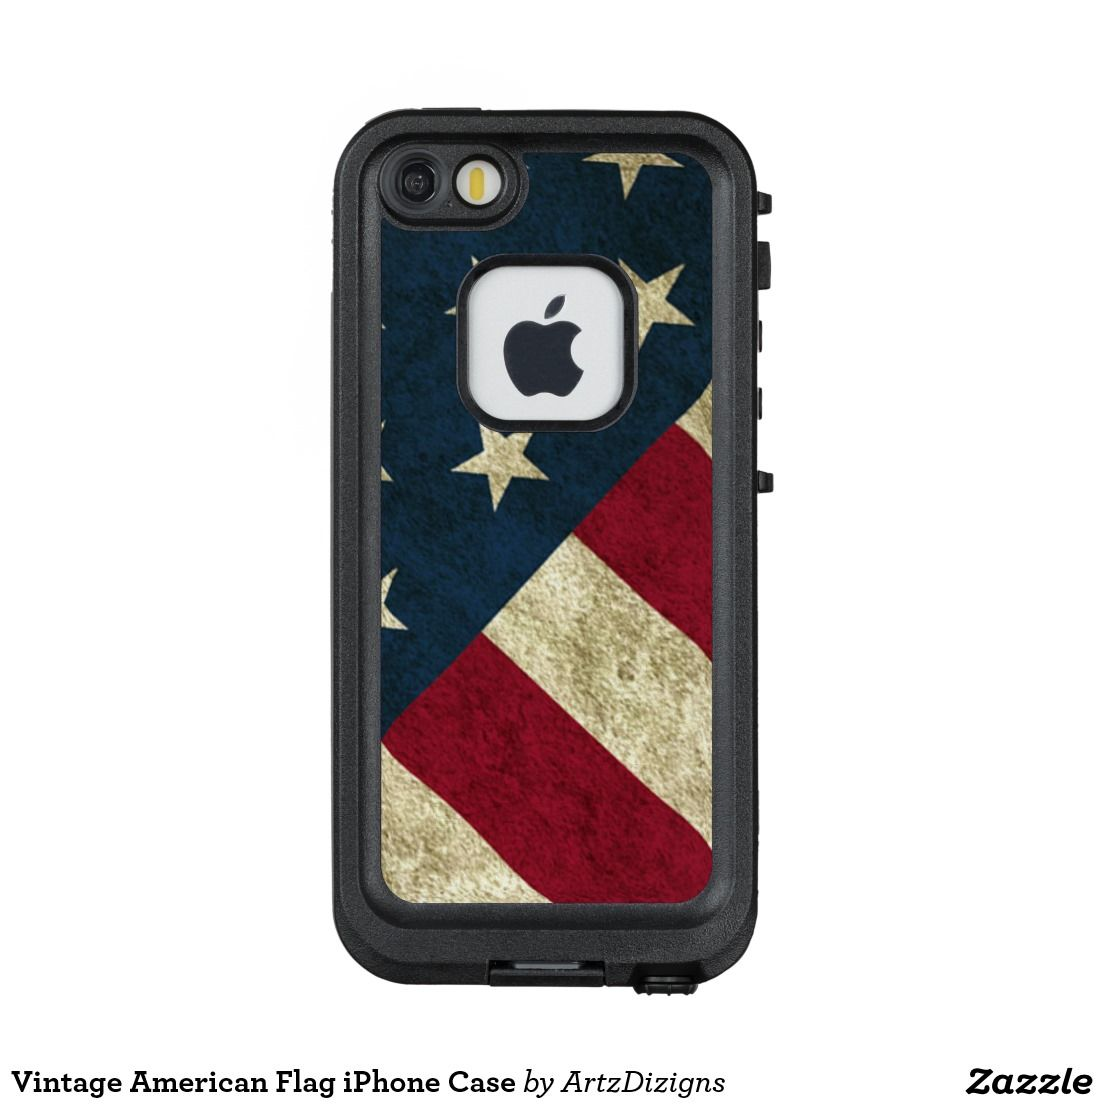 Vintage American Flag iPhone Case  Lifeproof Fre iPhone 5 Case  http://www.zazzle.com/artzdizigns?rf=238365382999242687 #vintage #Americanflag #starsandstripes #iPhone5case #lifeprooffre #zazzle